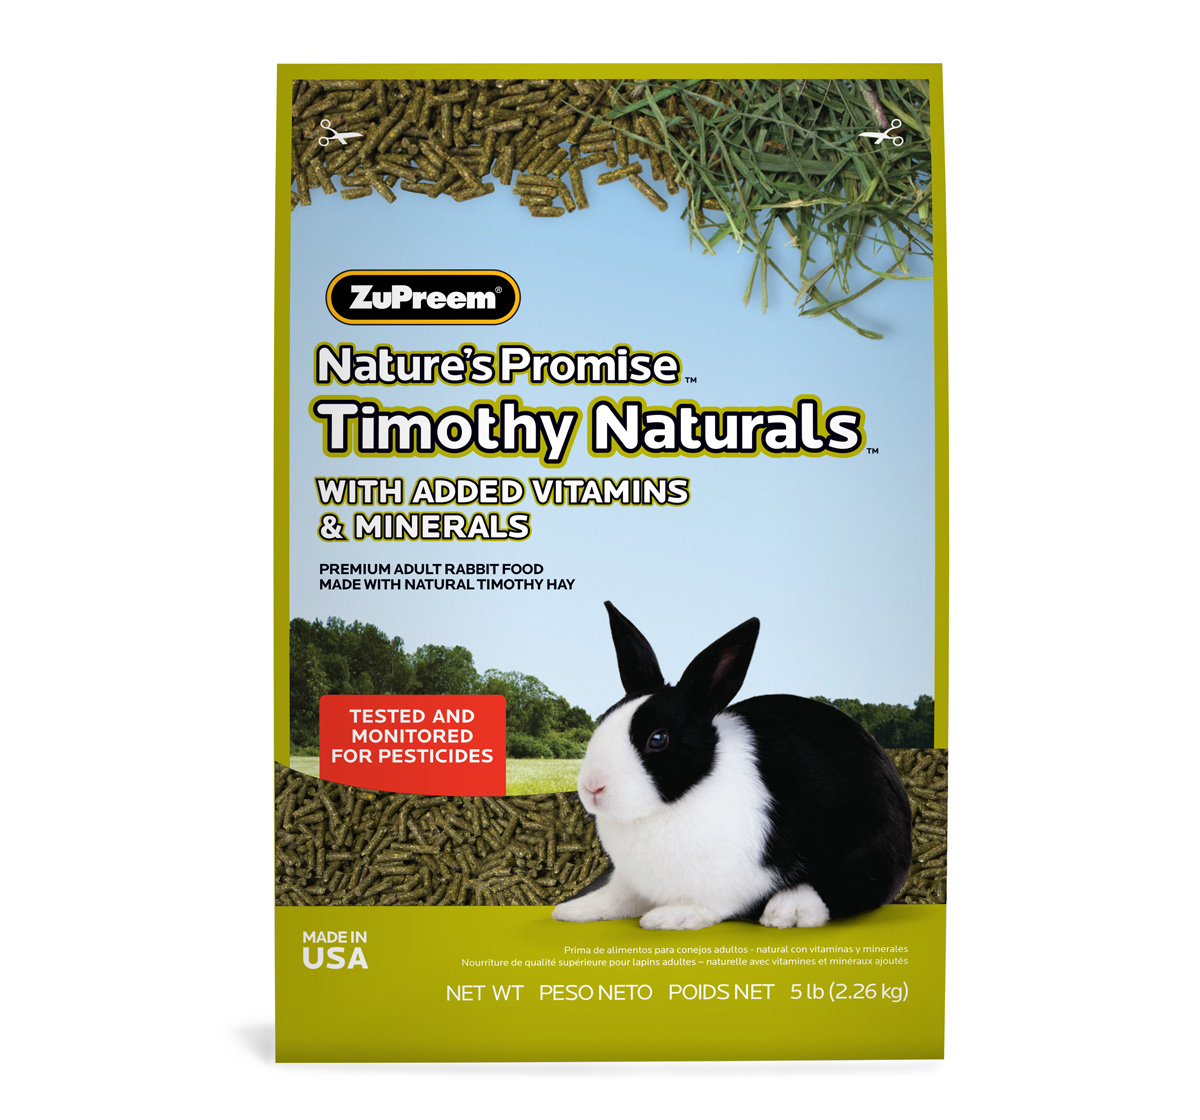 ZuPreem Natures Promise Trimonthy Naturals Rabbit Food - 2.26 Kg